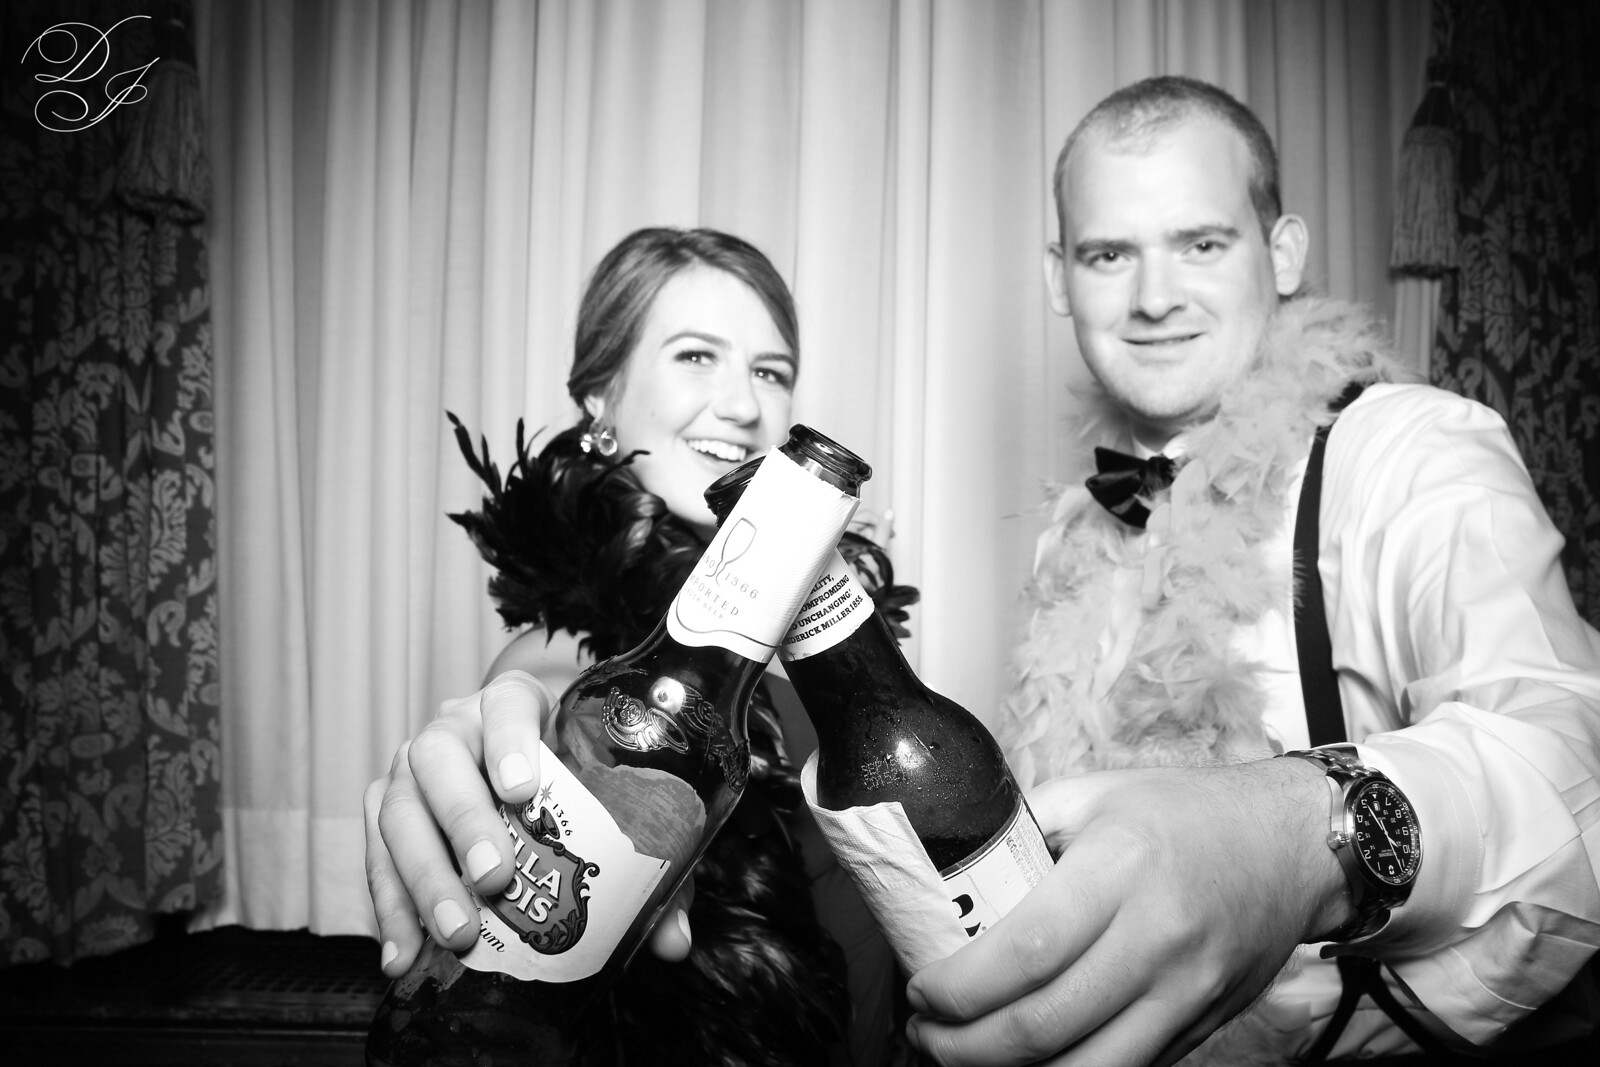 Chicago_Vintage_Wedding_Photobooth_Union_League_Club_23.jpg